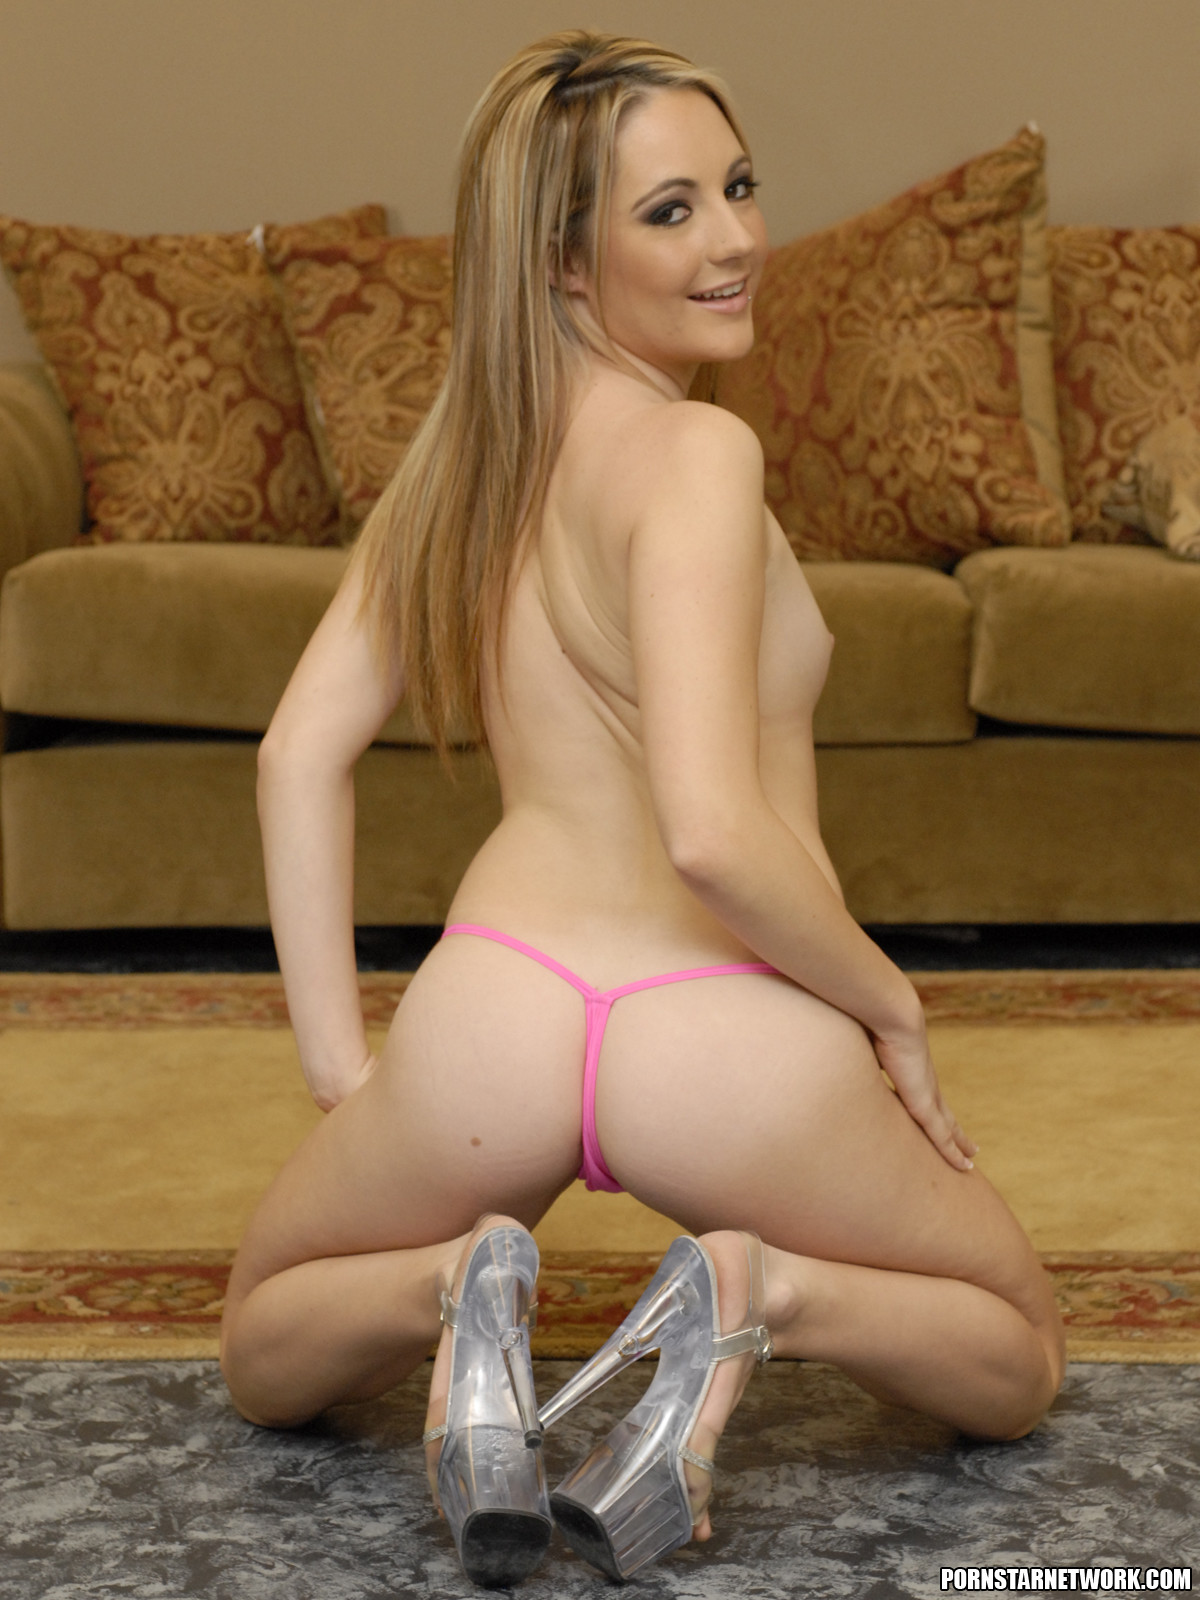 Stella cox new stepmom leigh darby has insane control issues - 1 part 9